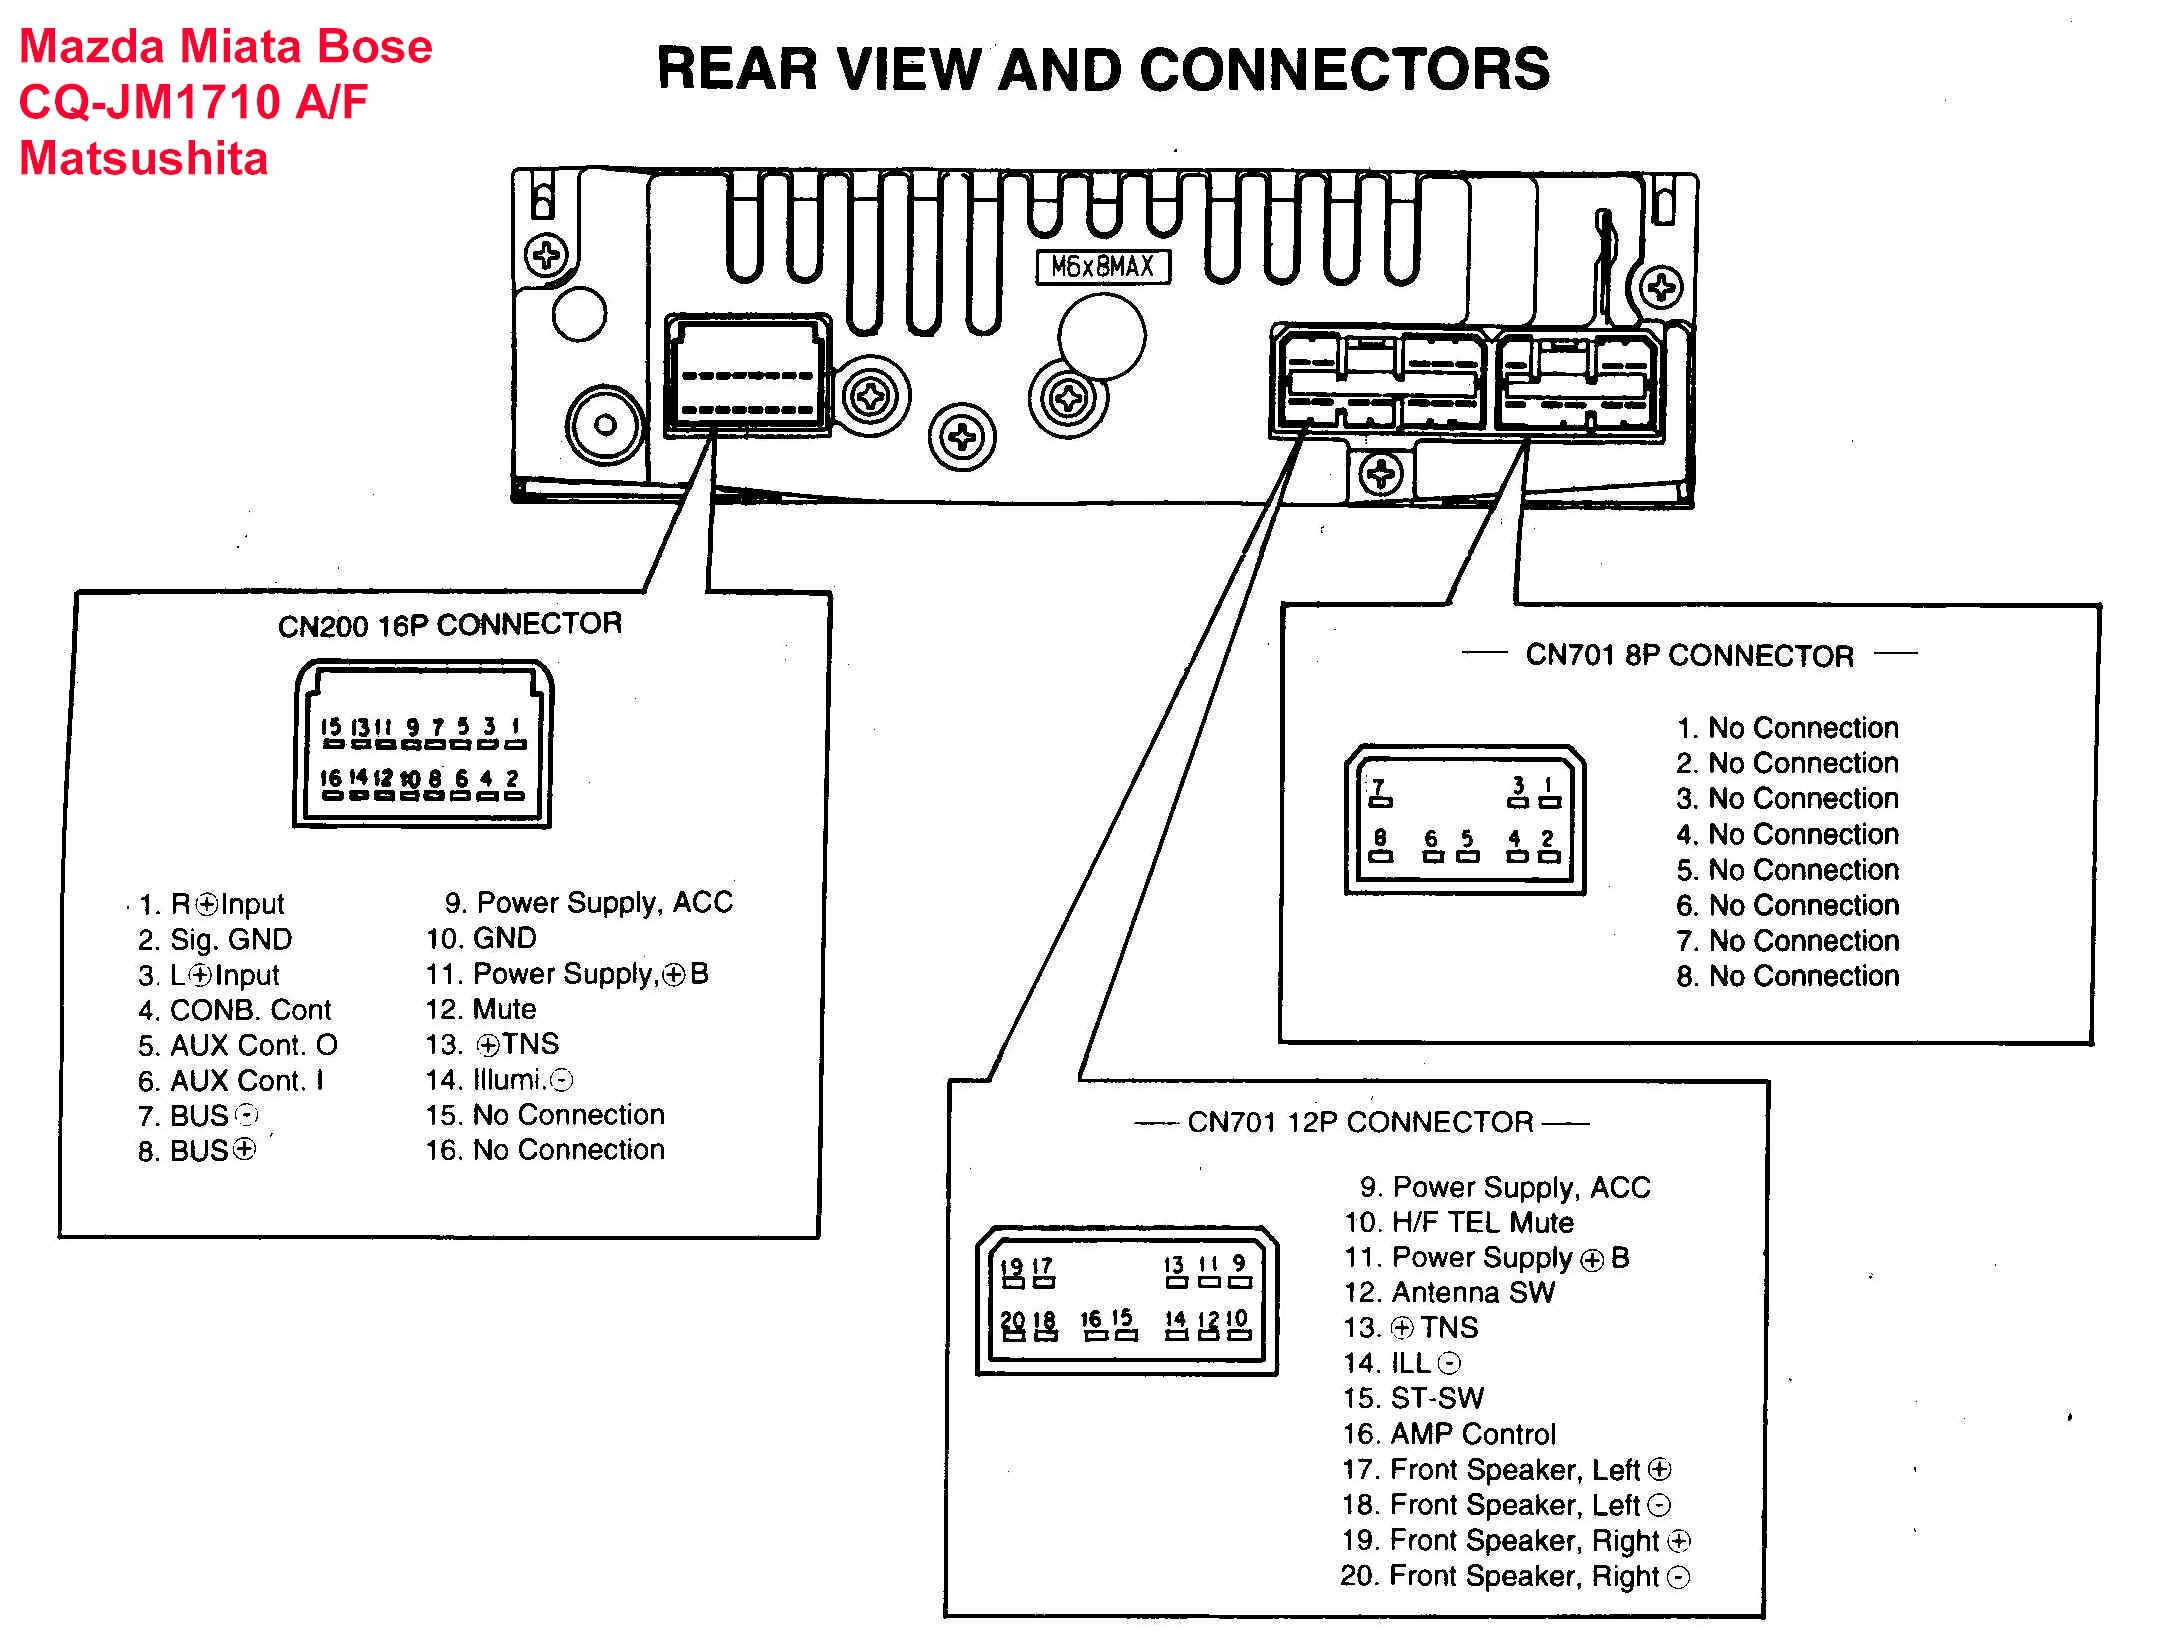 Wiring Diagram for sony Car Stereo Car with Detaleted Wiring and Factory Stereo Diagrams Wiring Diagram Of Wiring Diagram for sony Car Stereo